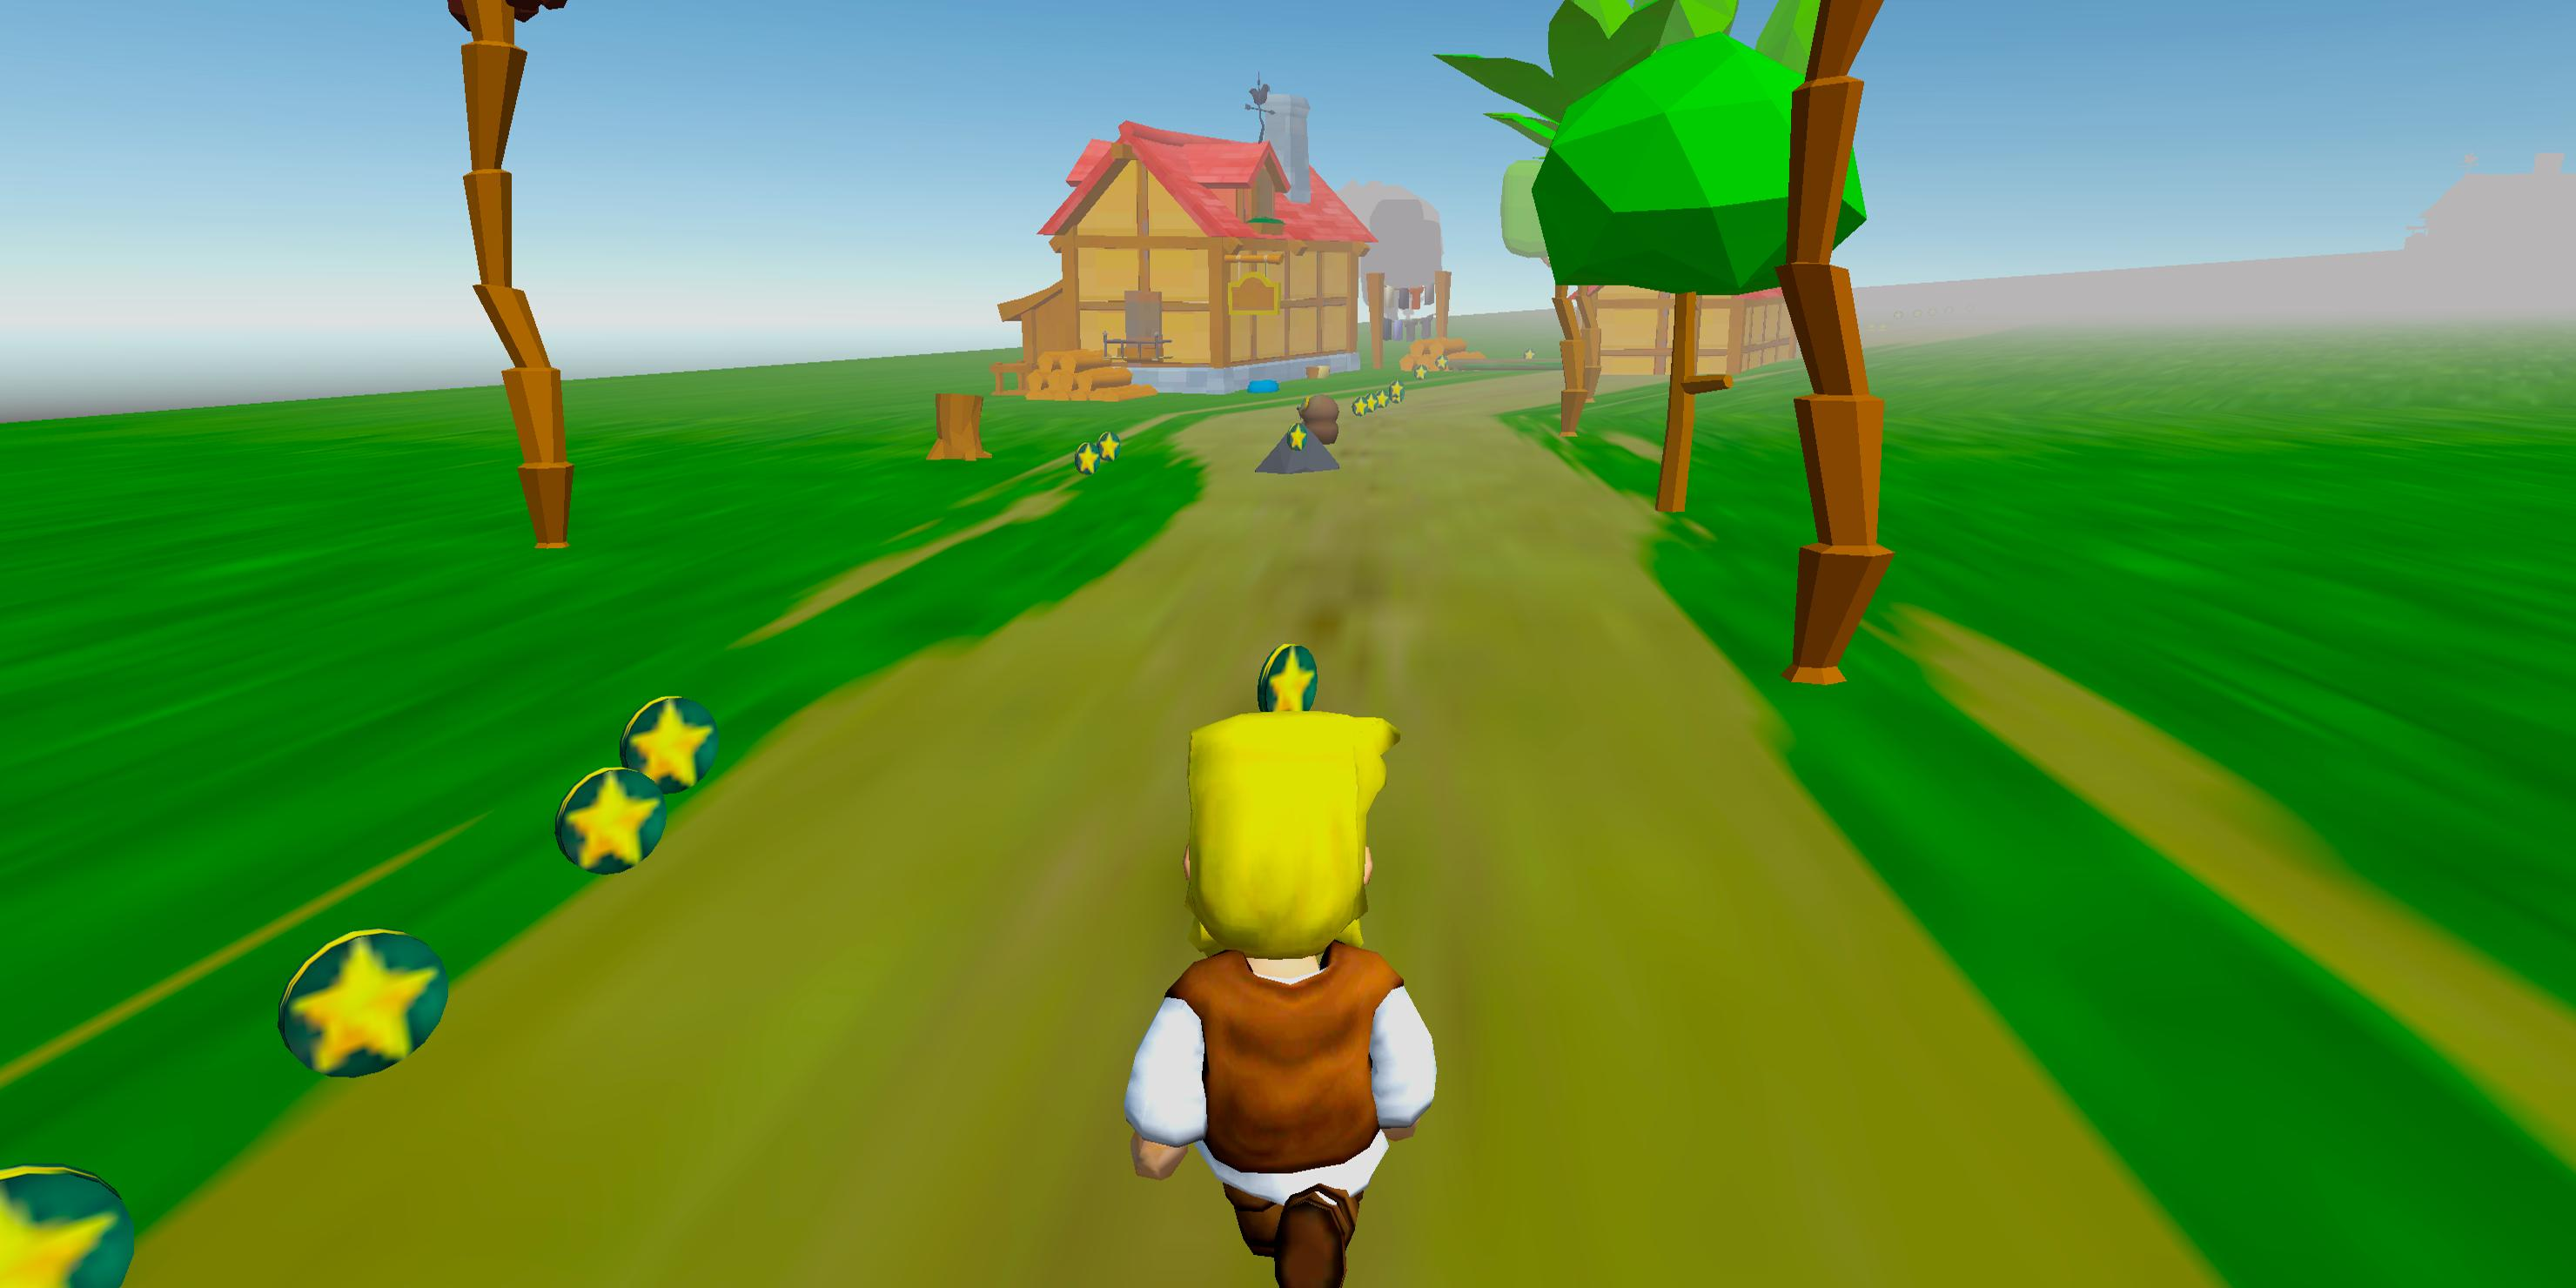 Running Crazy Farm 0.4 Screenshot 7